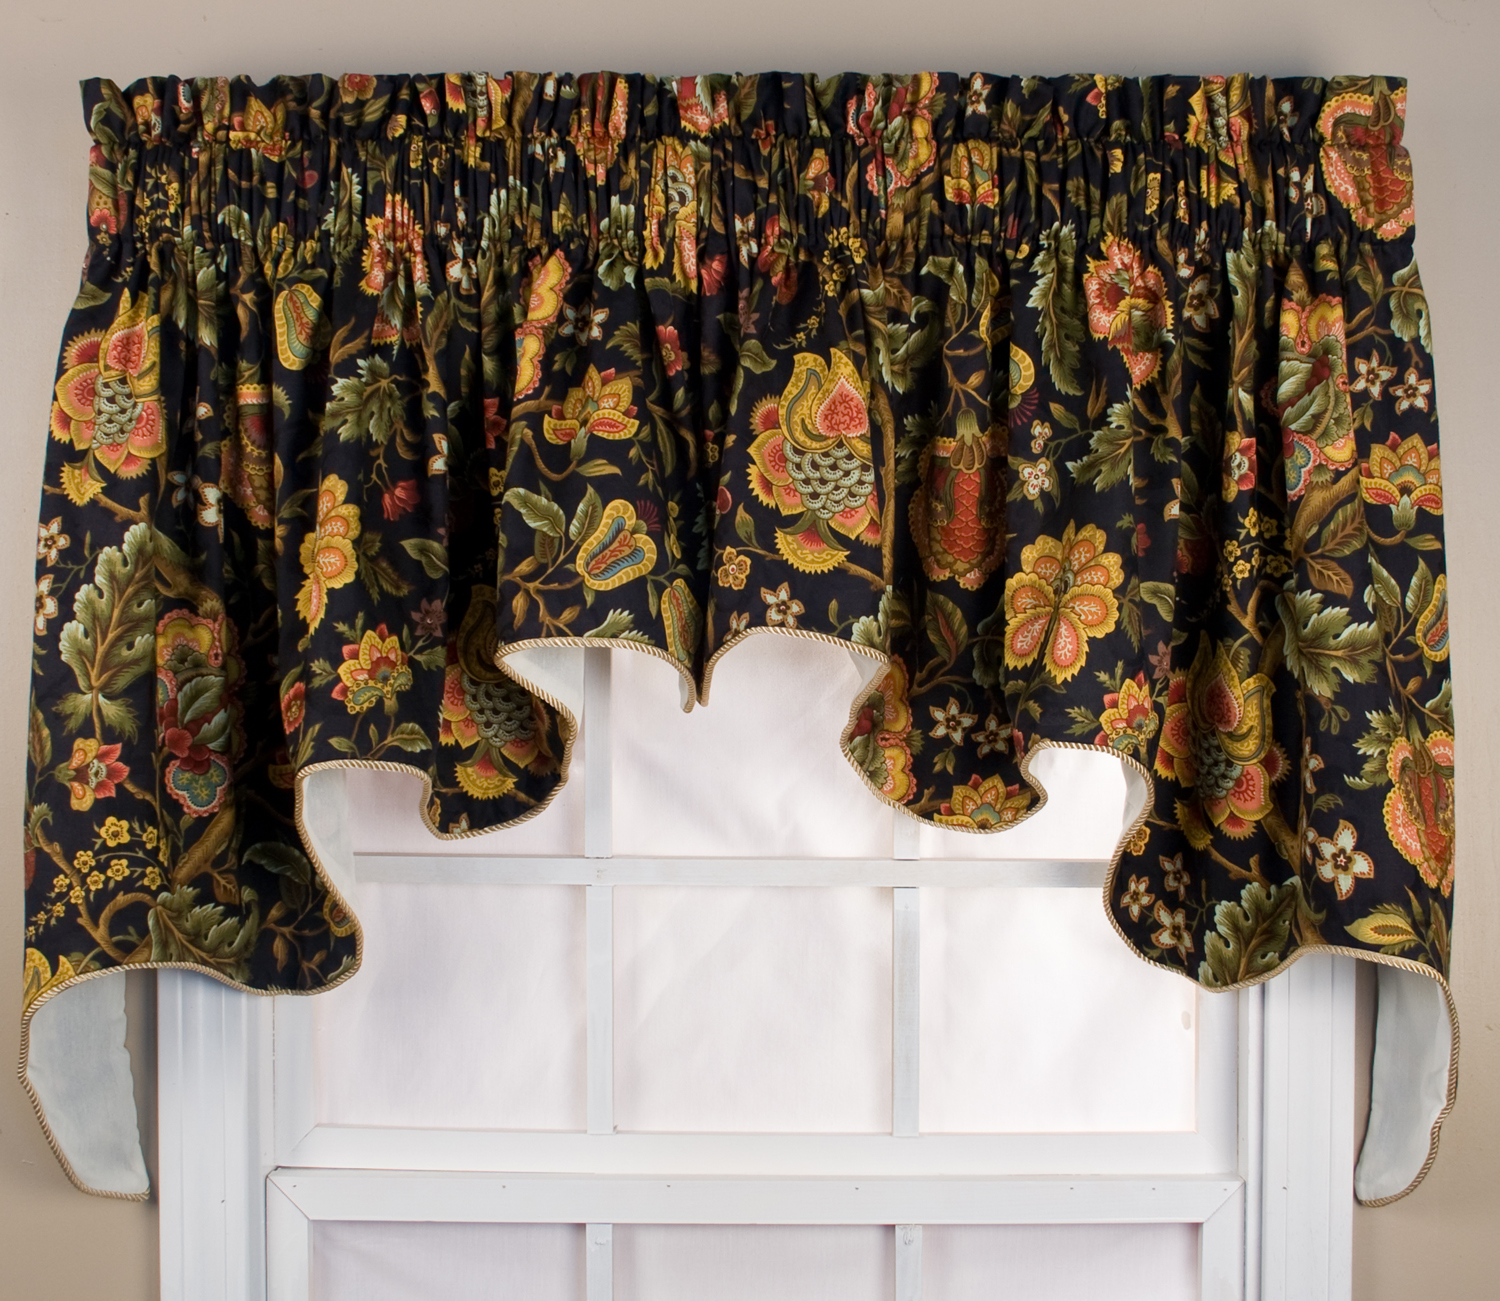 Swag curtains solids patterns - Boutique free valence ...